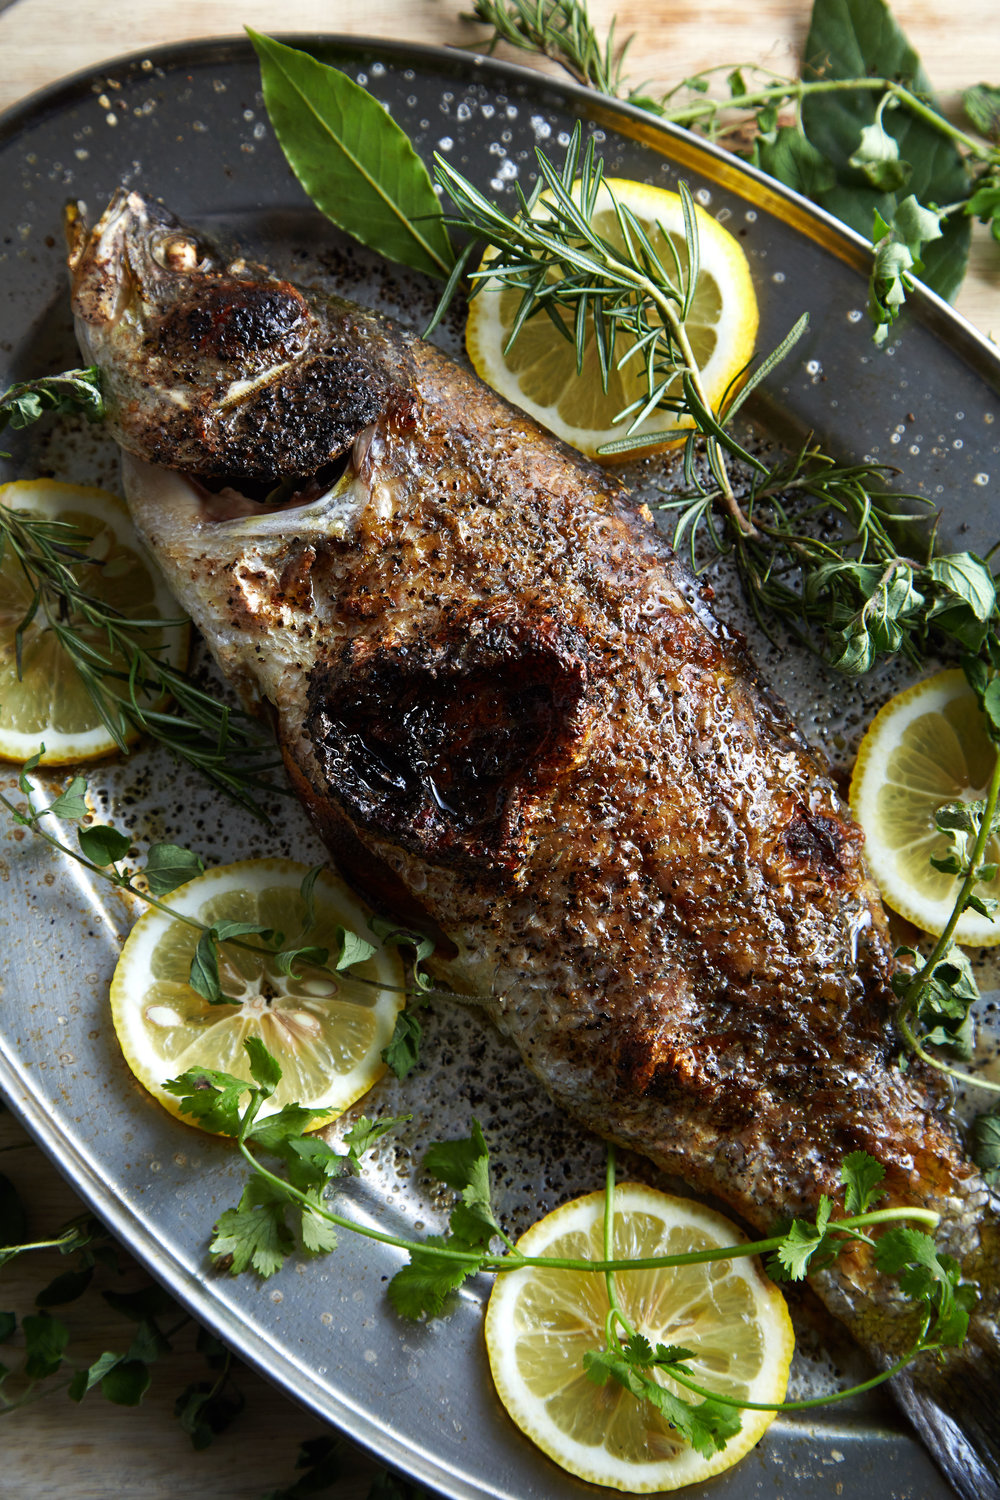 Attarine_Woodfired Fresh Fish of The Day stuffed with Lemon Spices served with Grilled Zucchini and Chermola Sauce(1).jpg